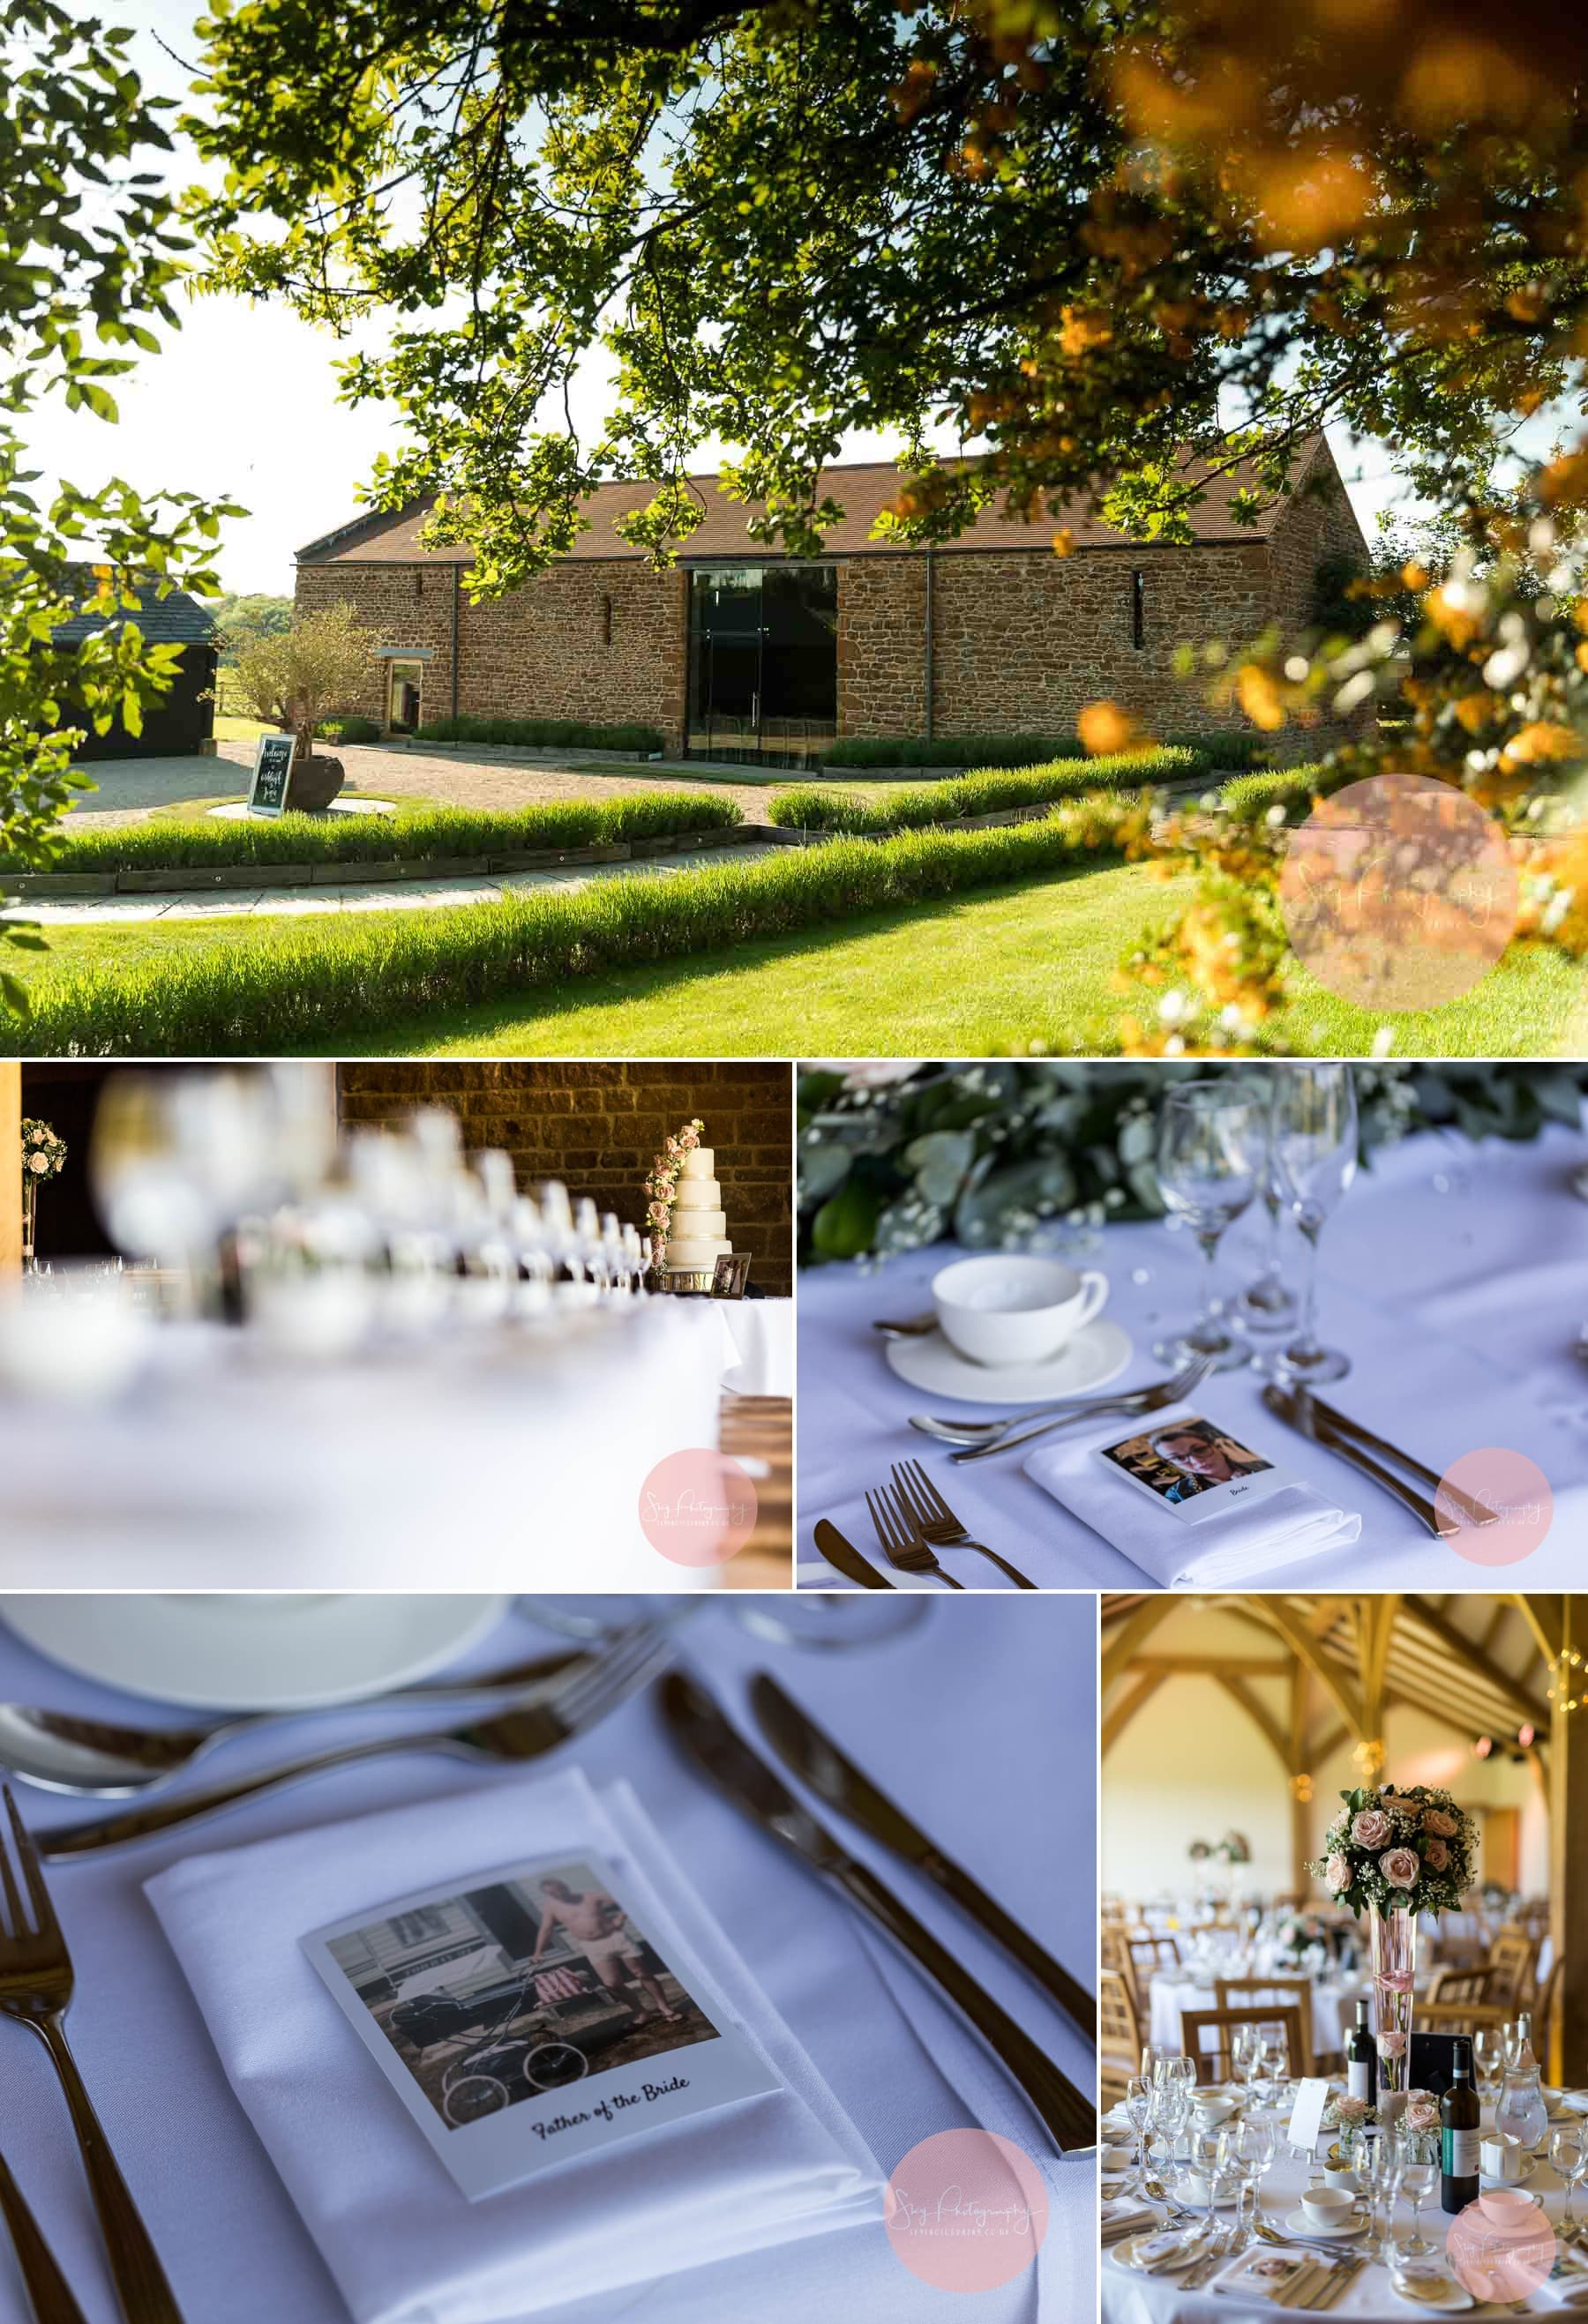 Dodford Manor wedding venue, best in Northamptonshire. Wedding Barns and detail photos